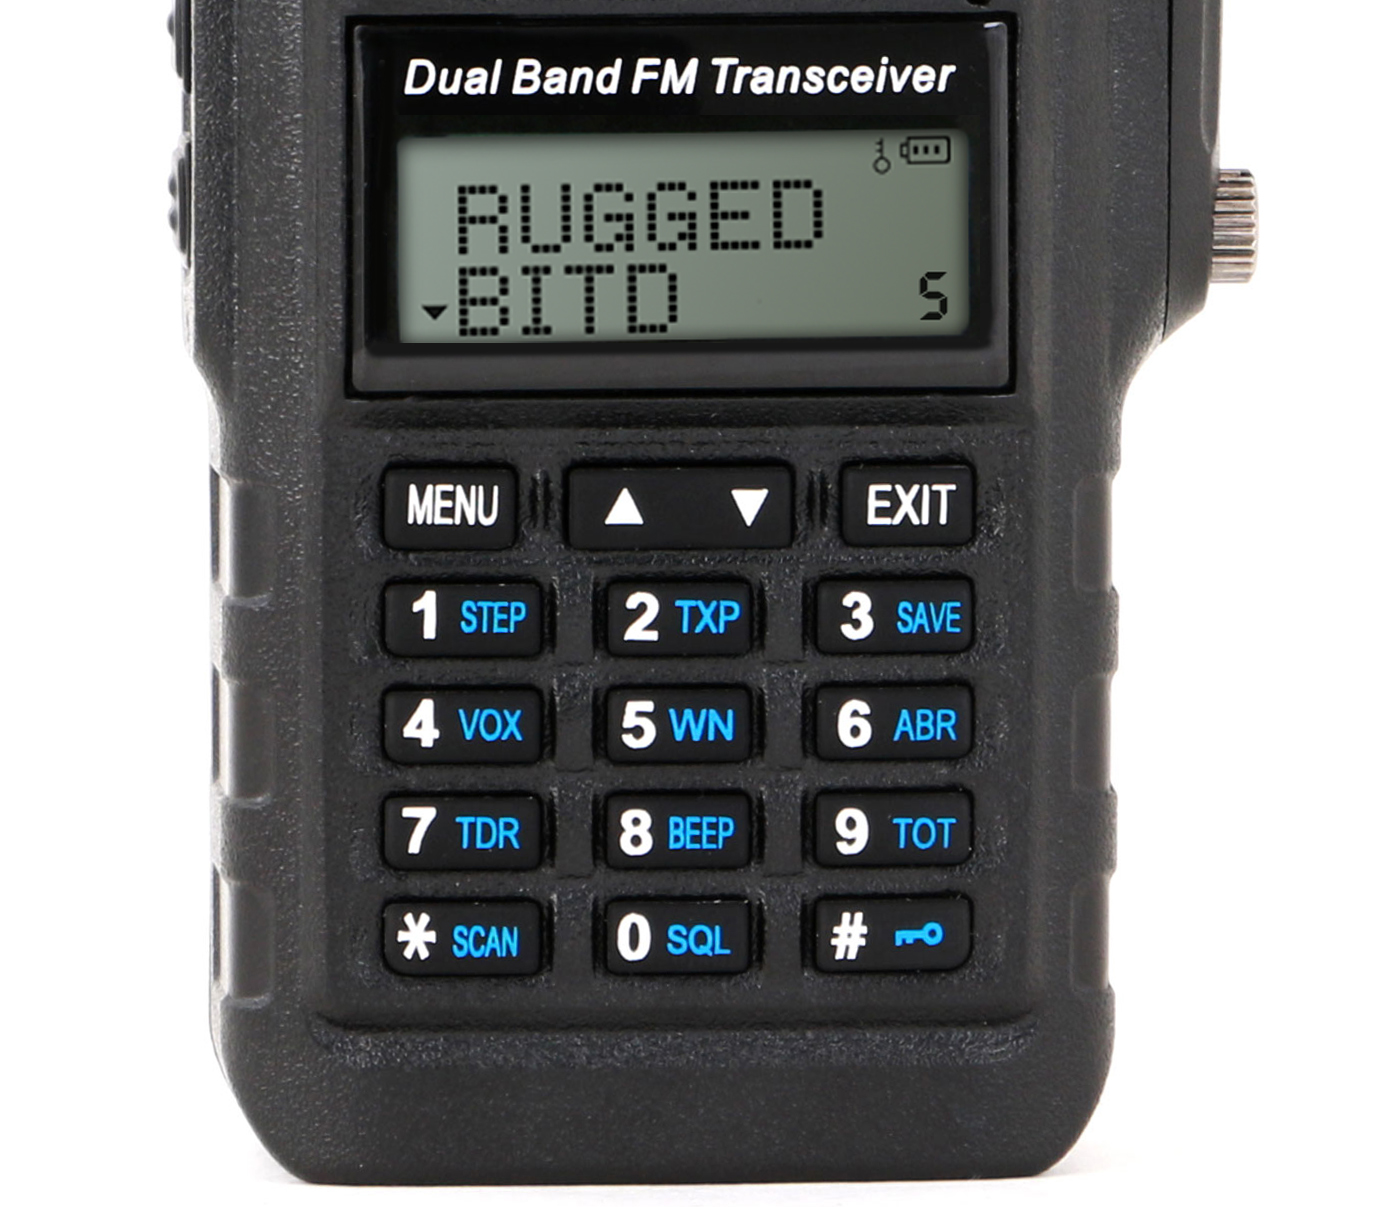 rugged radios announces their waterproof rh5x handheld radio atv